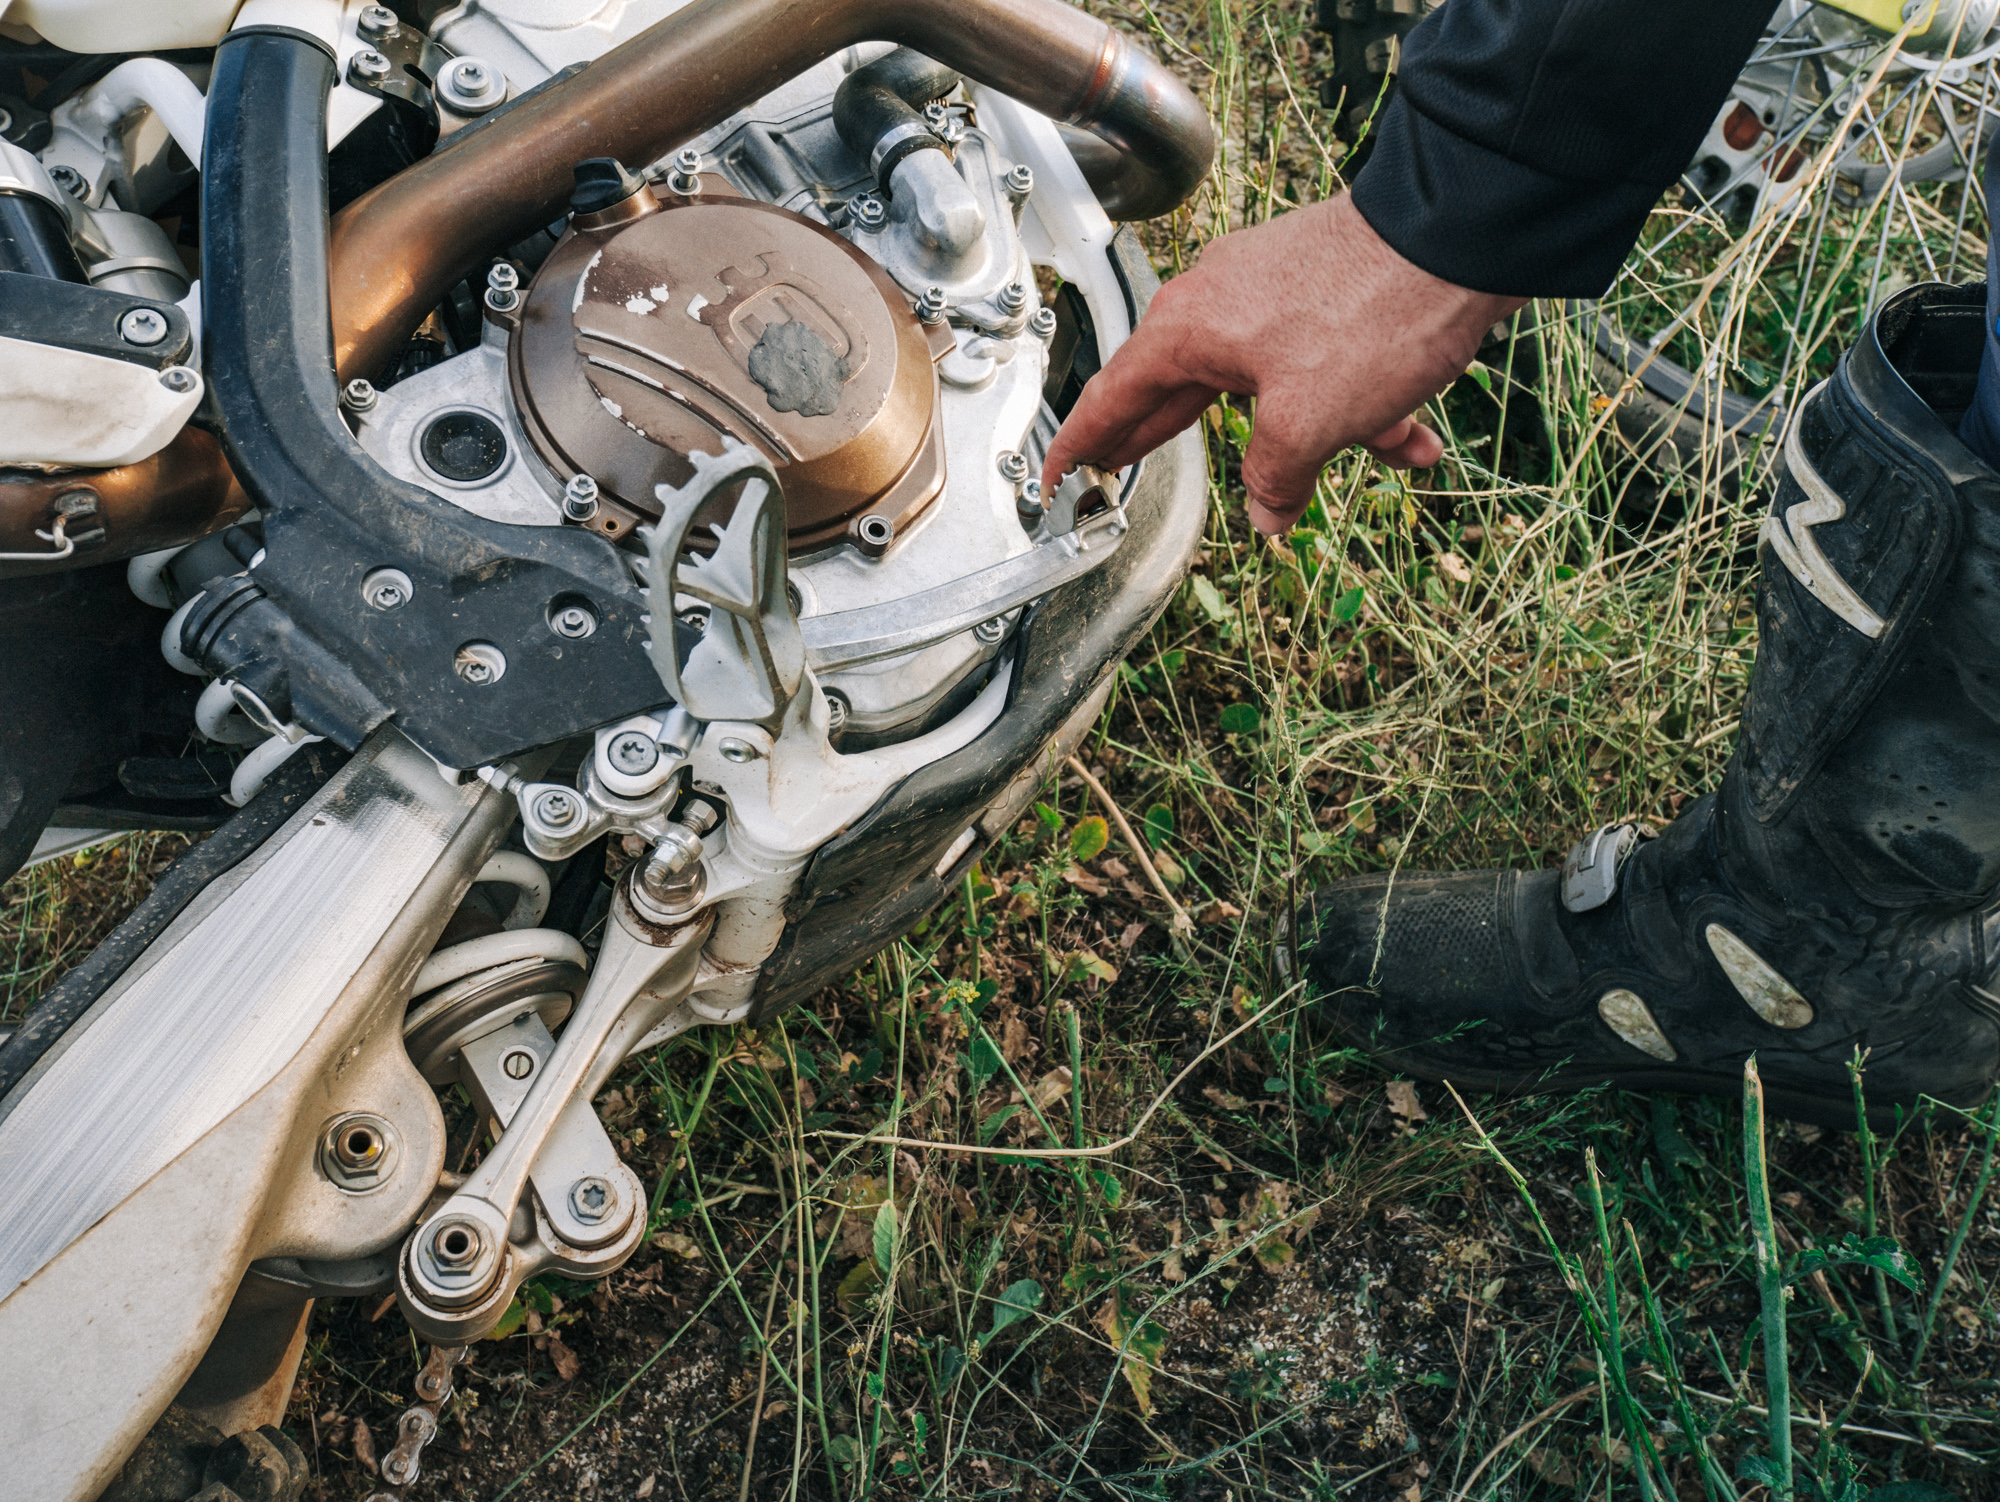 8. Pump rear brake before you get back on the bike. - This will return full pressure to the brake caliper and now you are ready to ride.